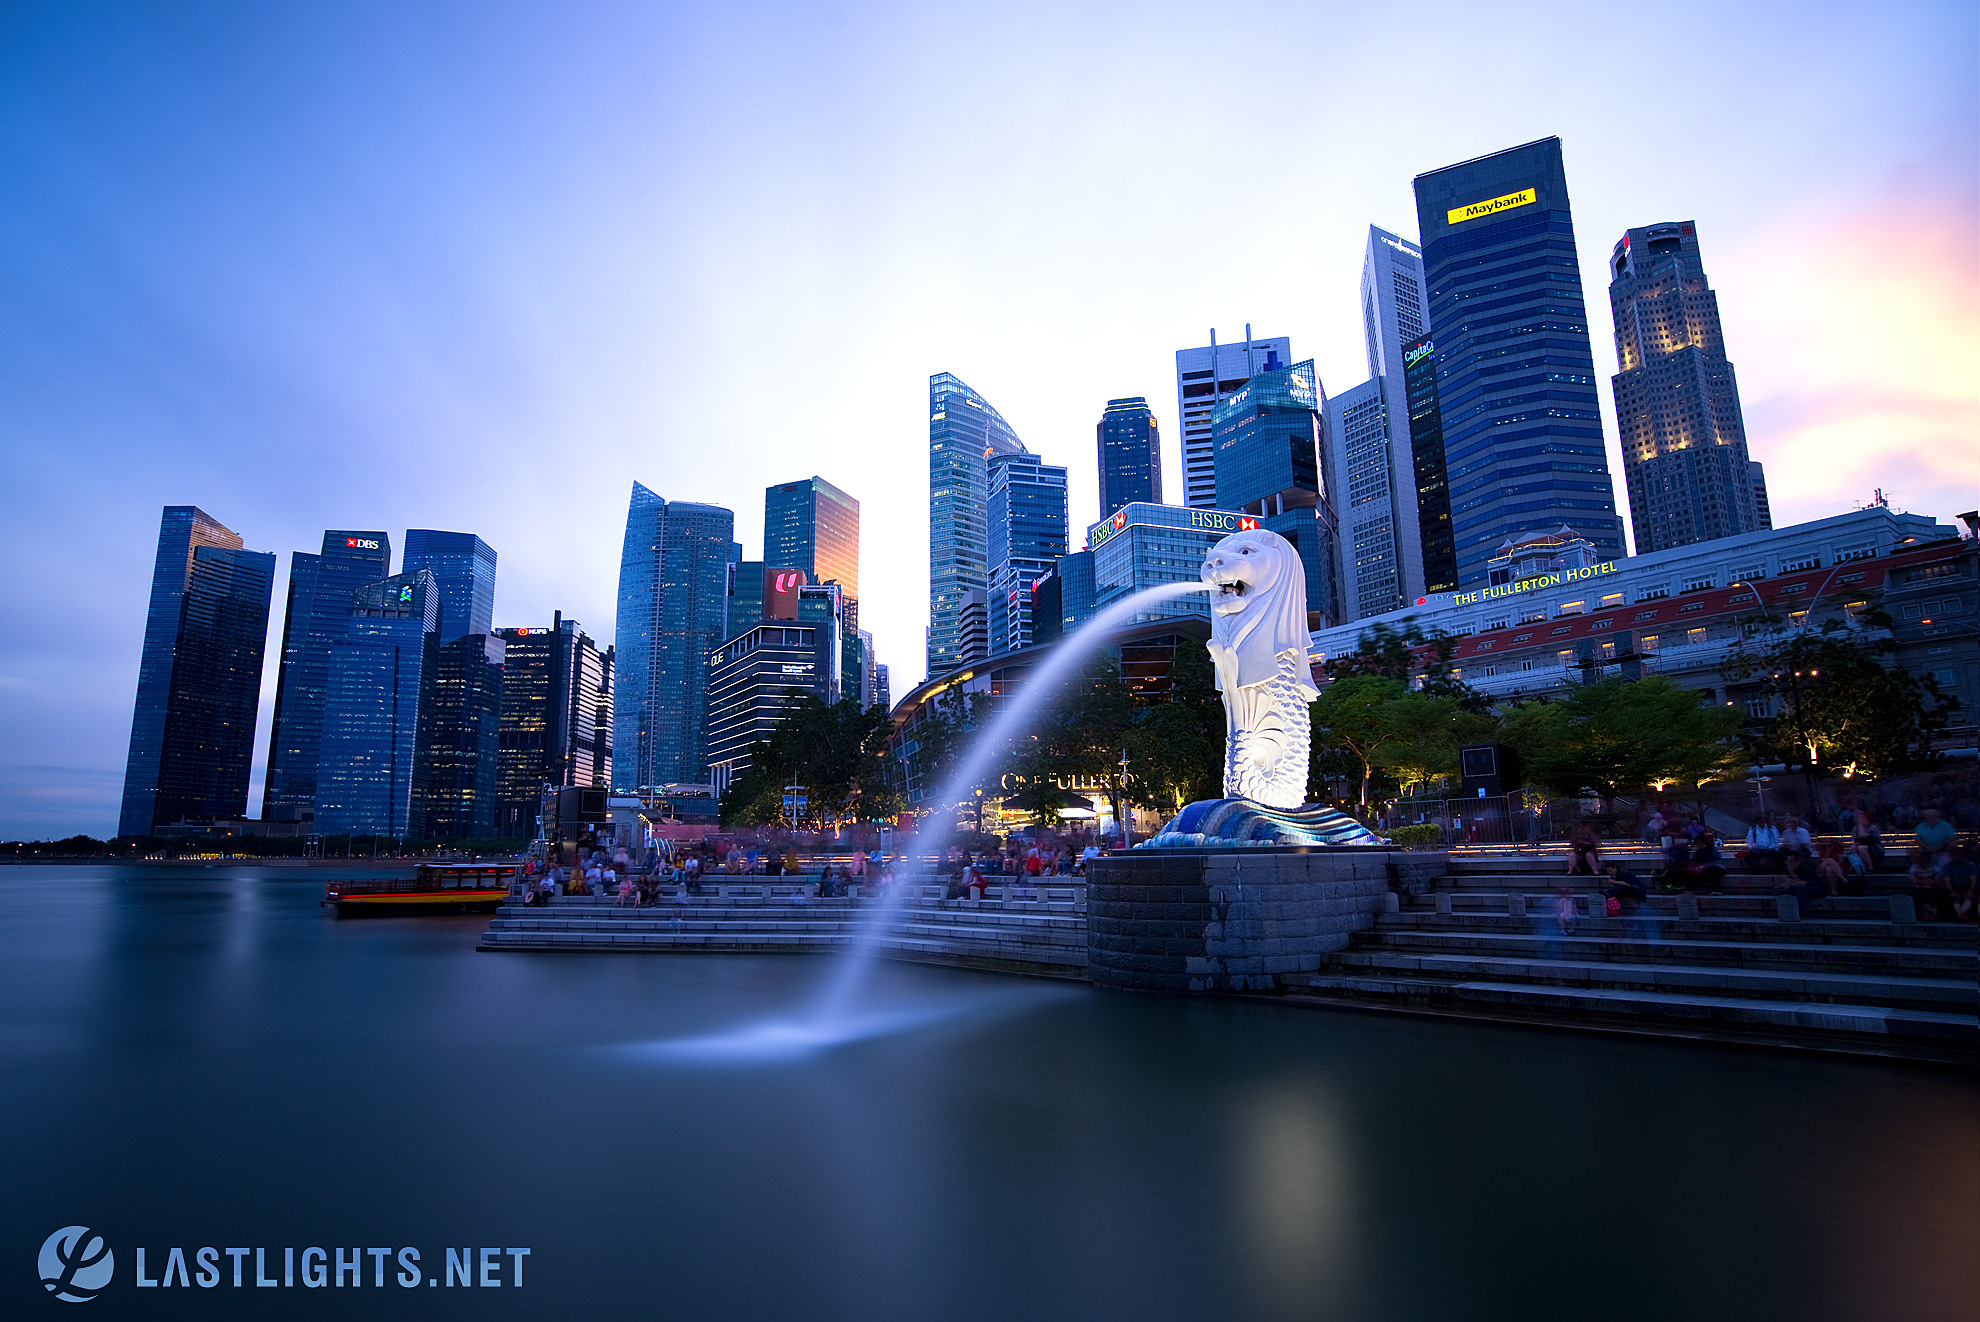 Spot 2: Shoot from Merlion Viewing Platform